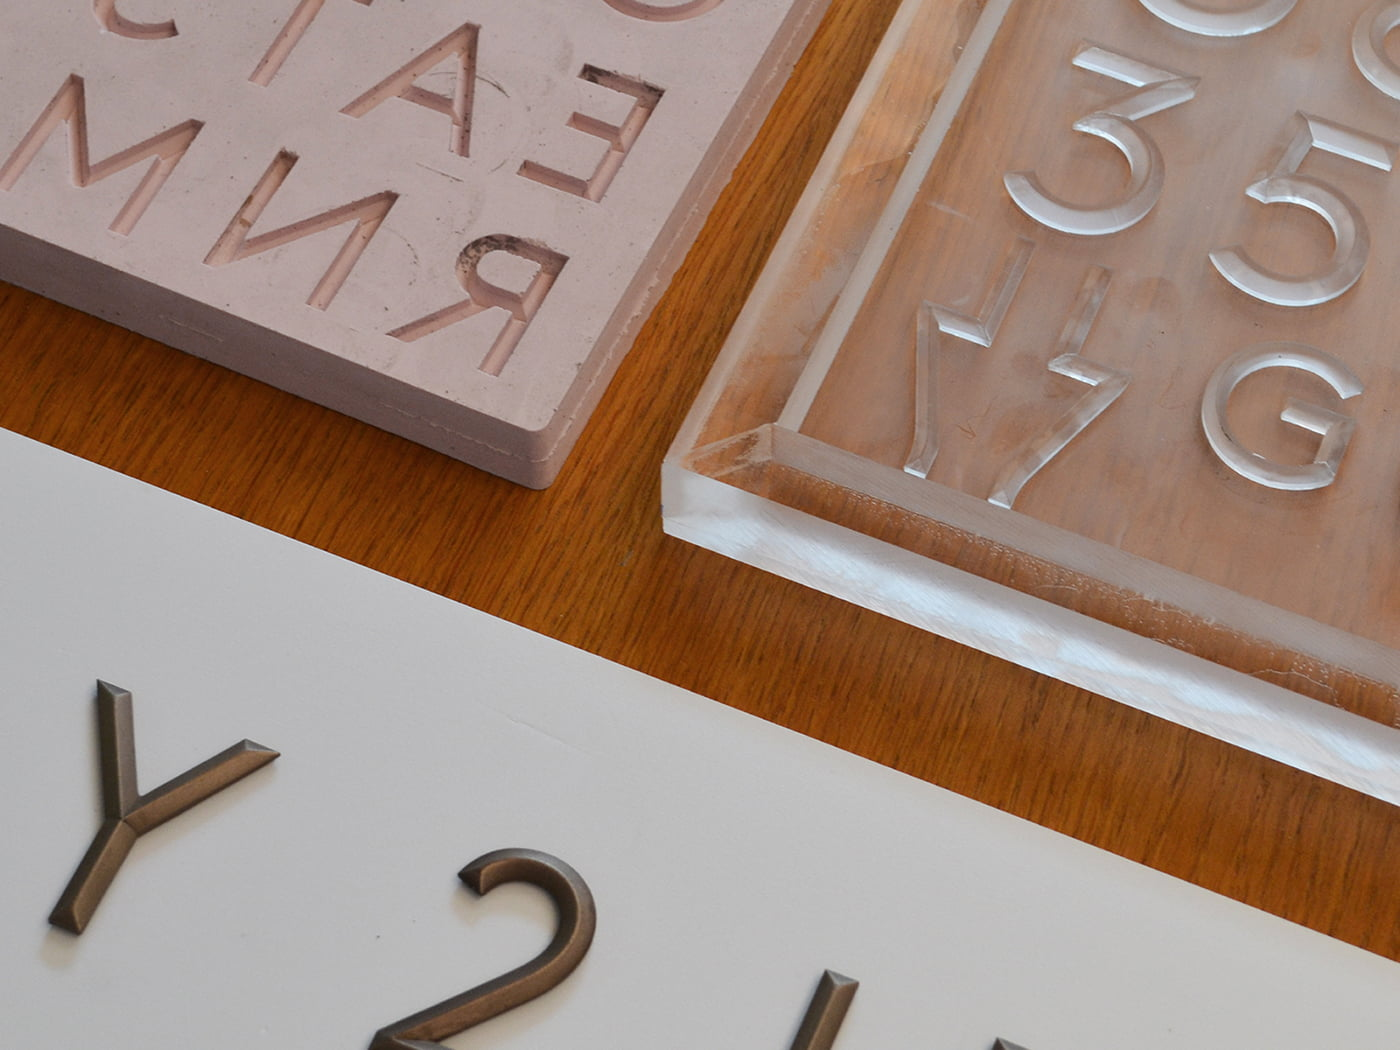 3D letters manufacturing process